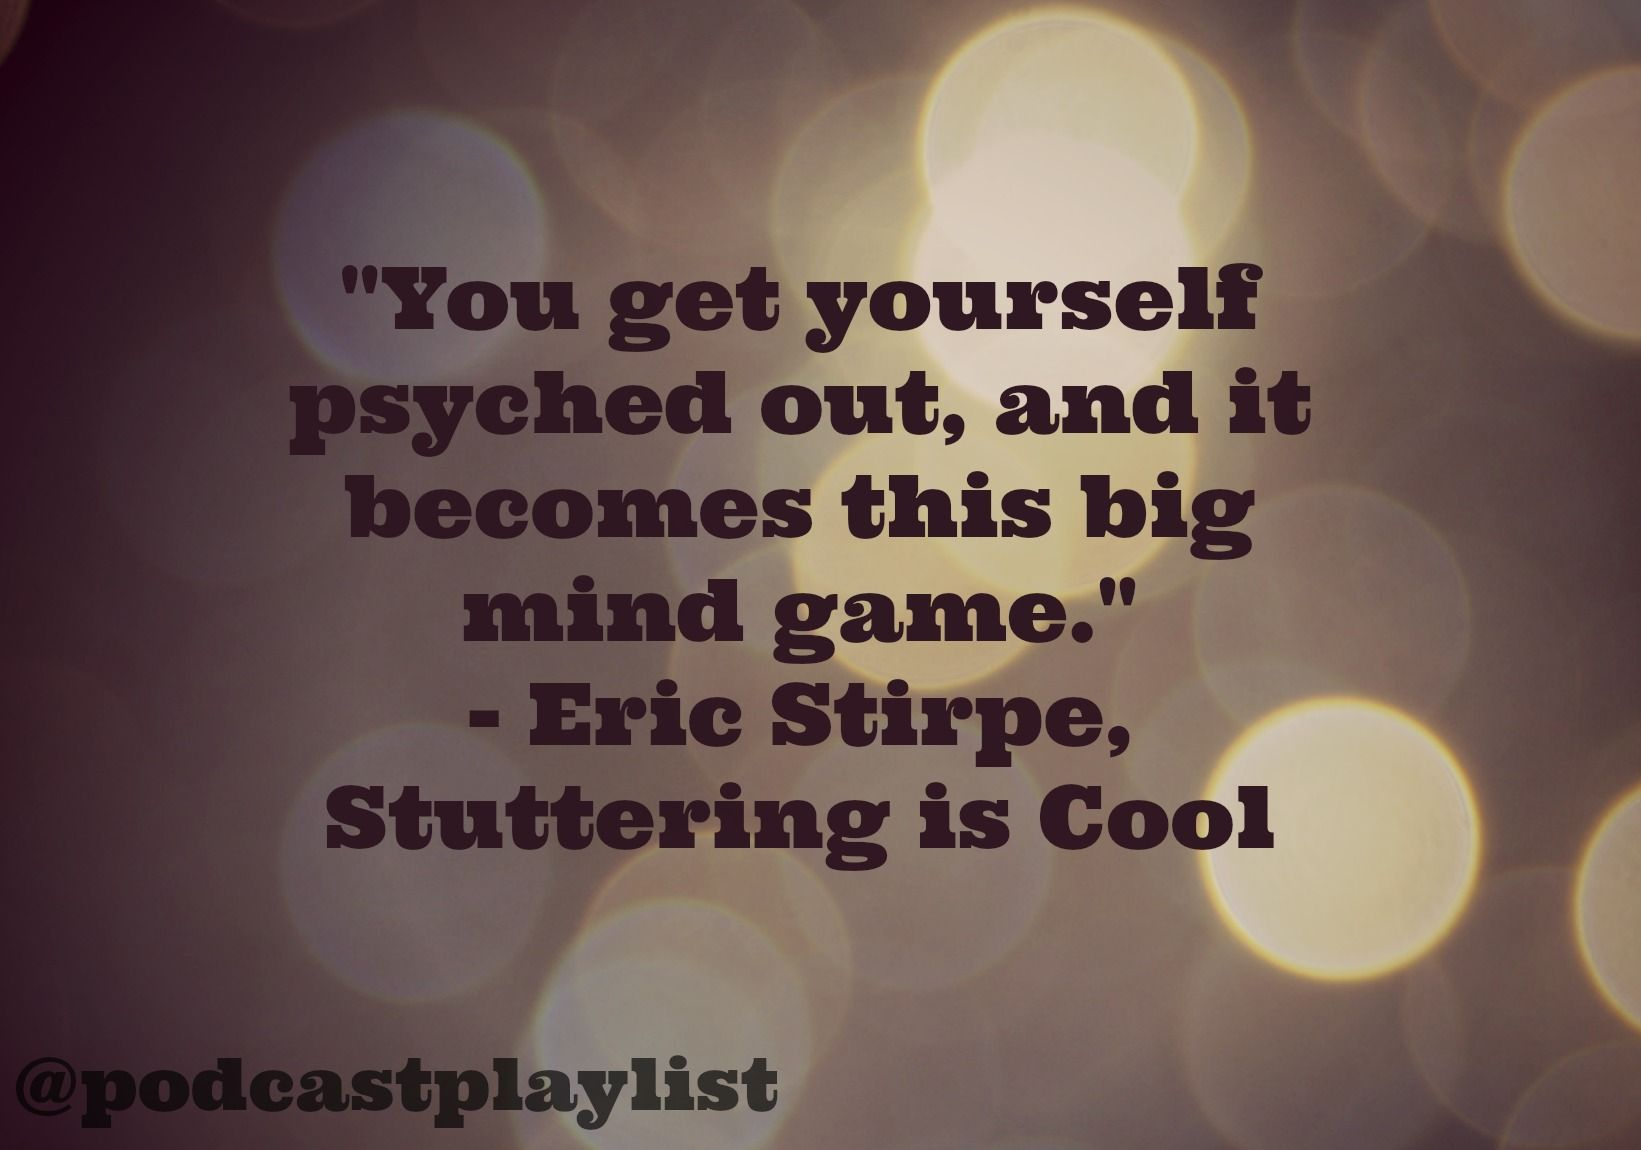 Stuttering quotes, Eric Stirpe, Stuttering is Cool, Podcast Playlist CBC